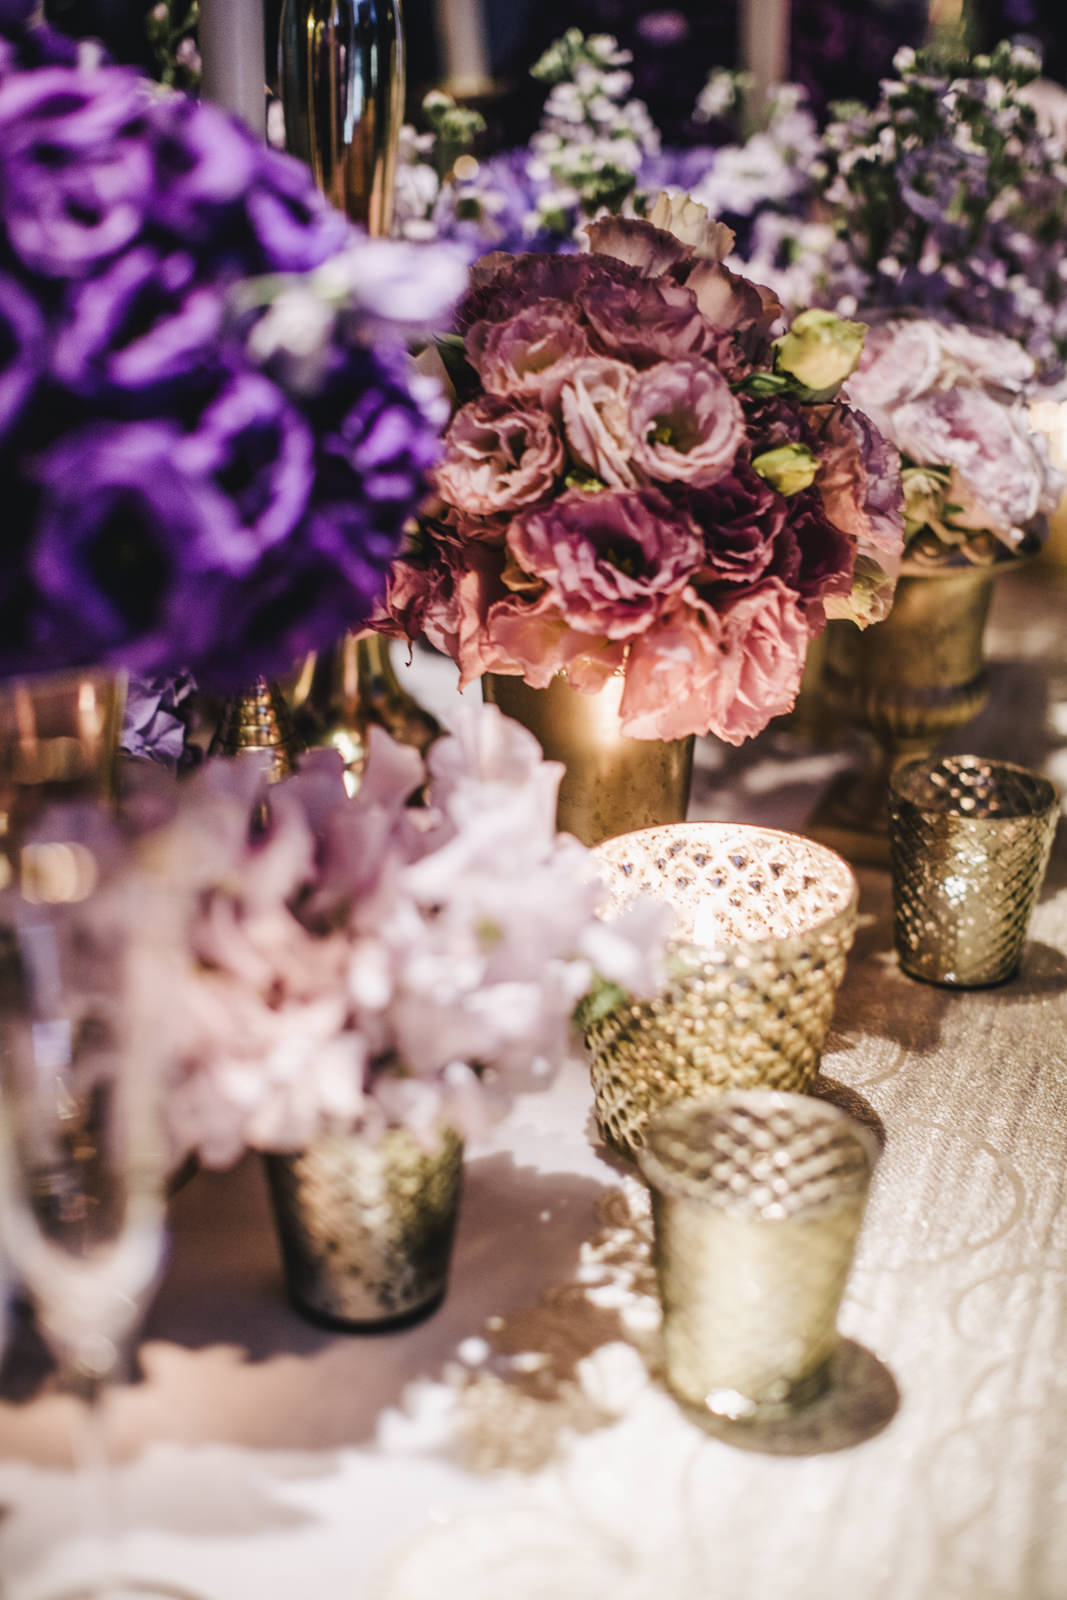 detail of the flowers on the wedding table